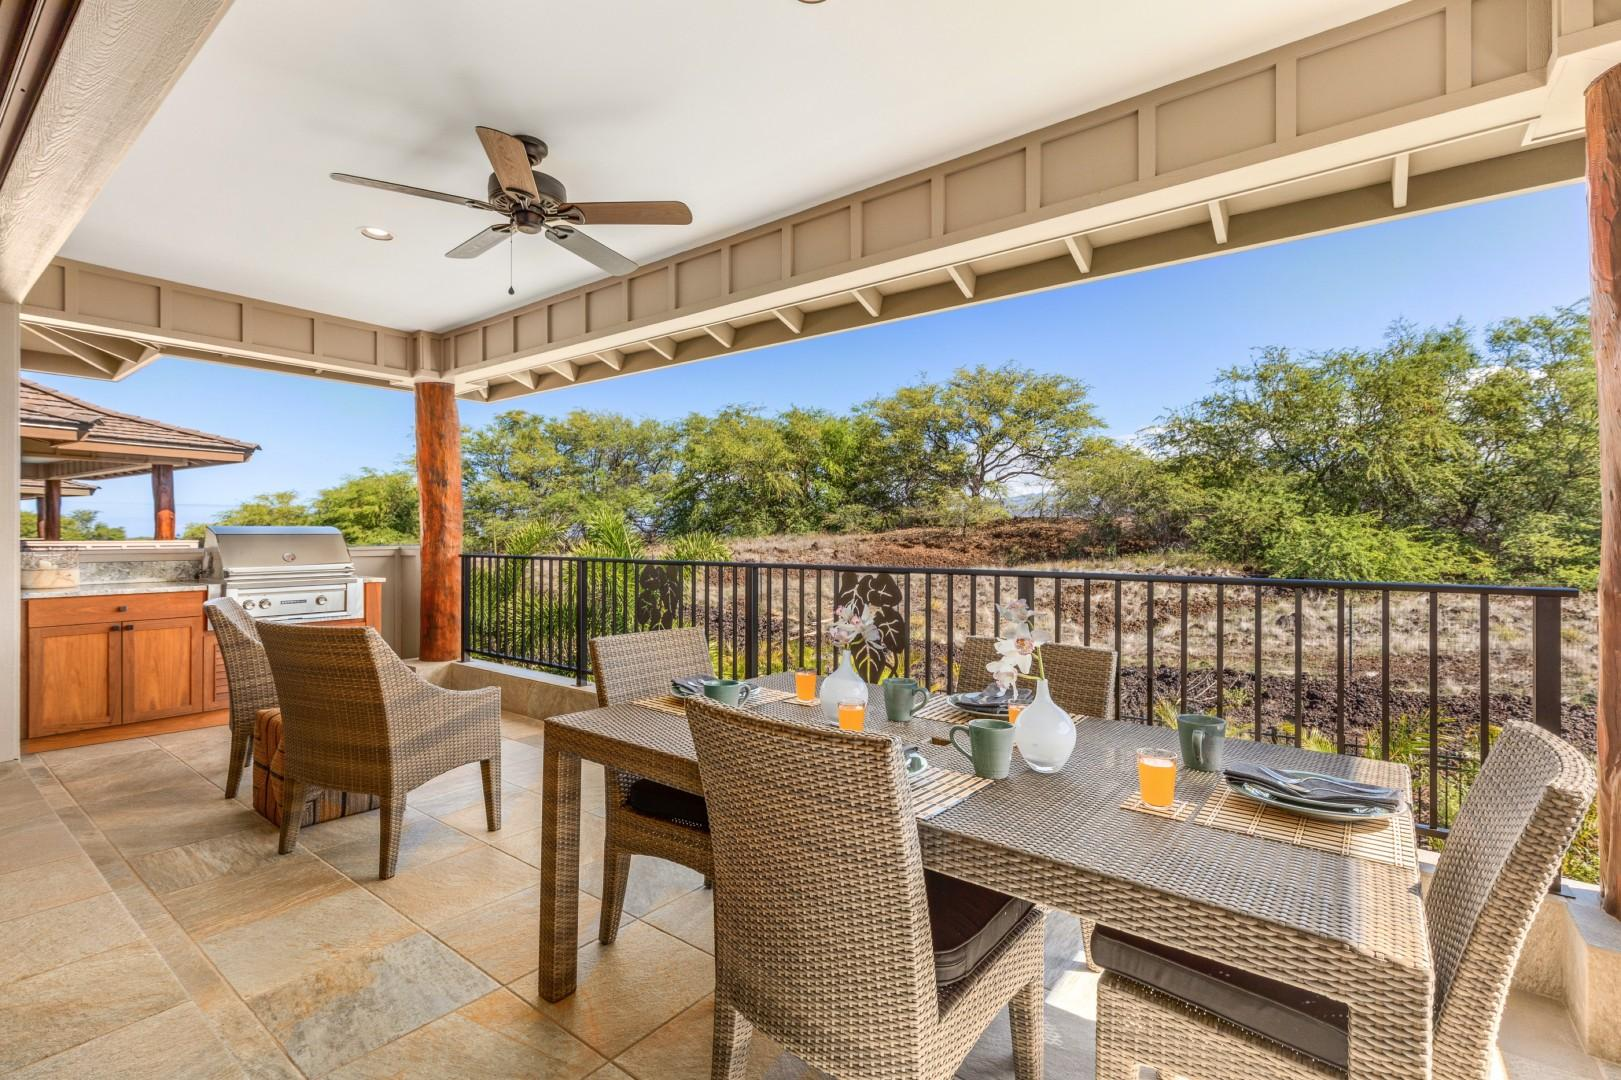 Upstairs terrace with dining area and large Sedona BBQ grill.